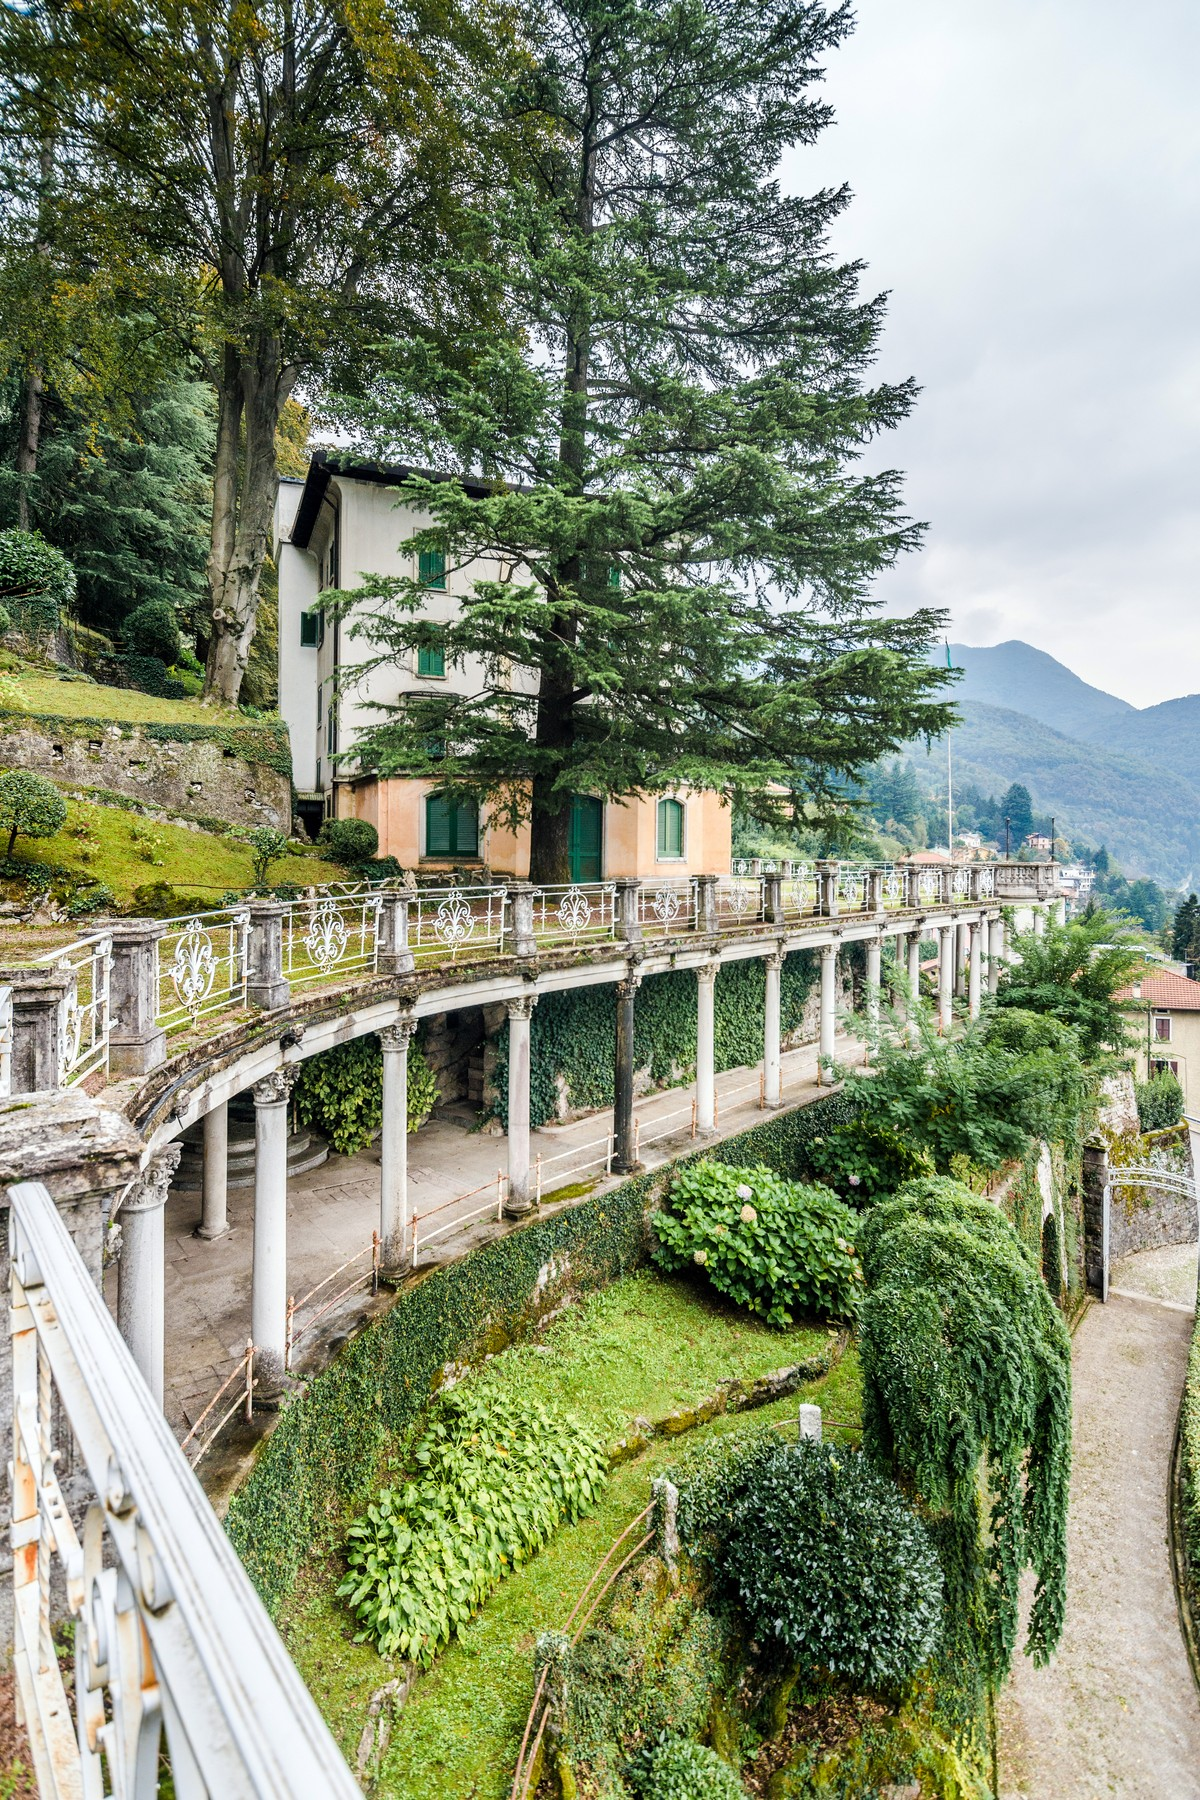 Additional photo for property listing at Distinguished panoramic XIXth century villa Via alle Rive Faggeto Lario, Como 22020 Italie